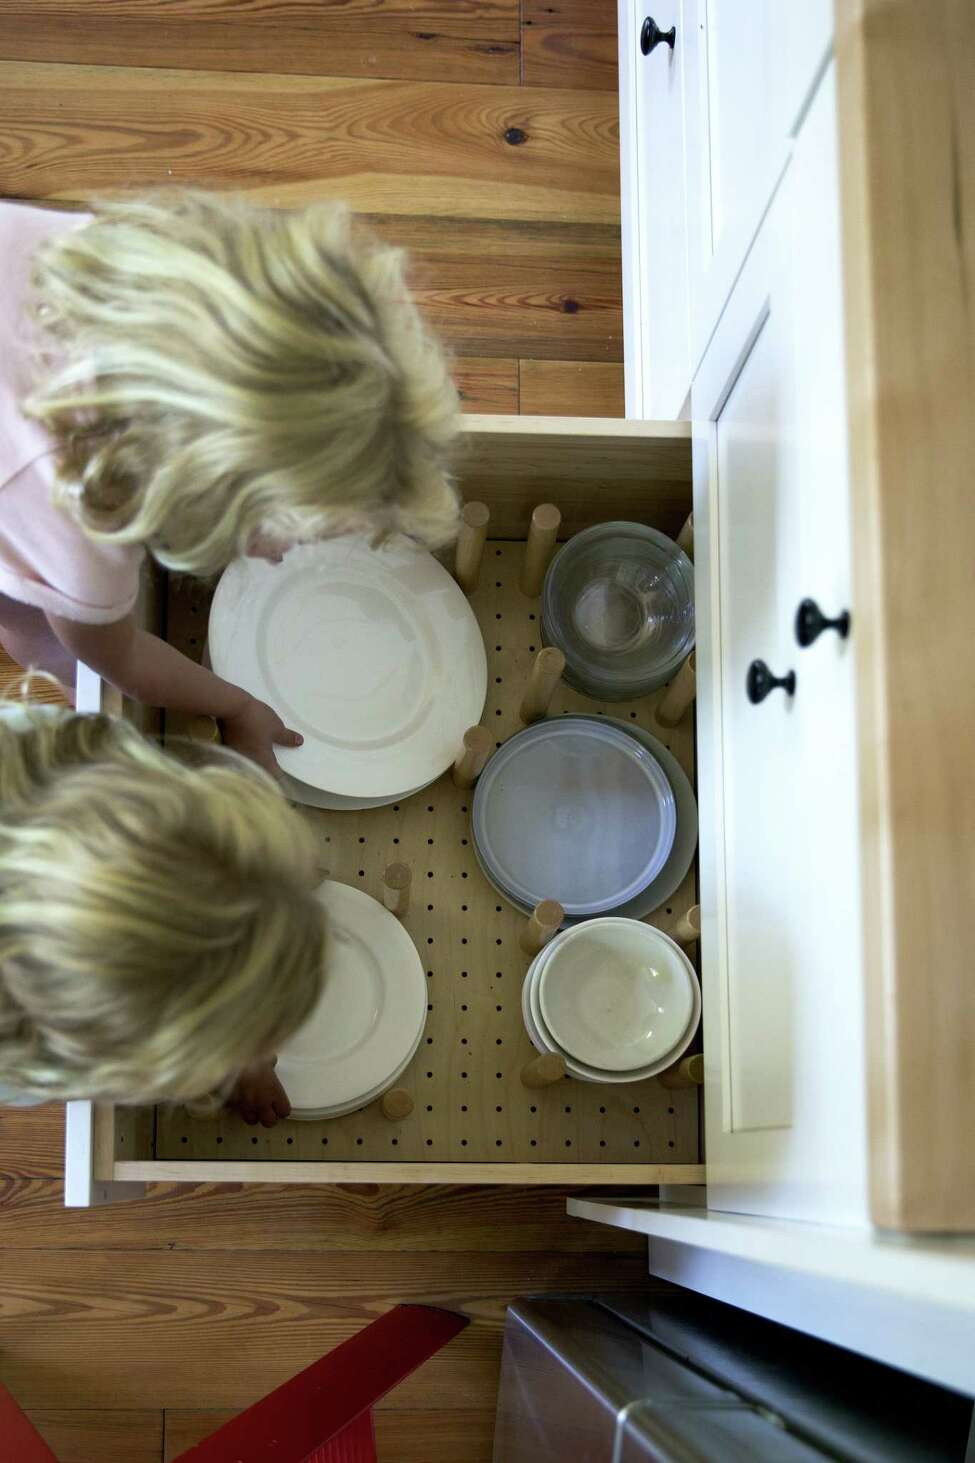 When designing her new kitchen, food blogger Ali Stafford wanted dishes and glasses stored at a height her children could reach them. Peg inserts keep the dishes neat and secure. (Photo by Ali Stafford)